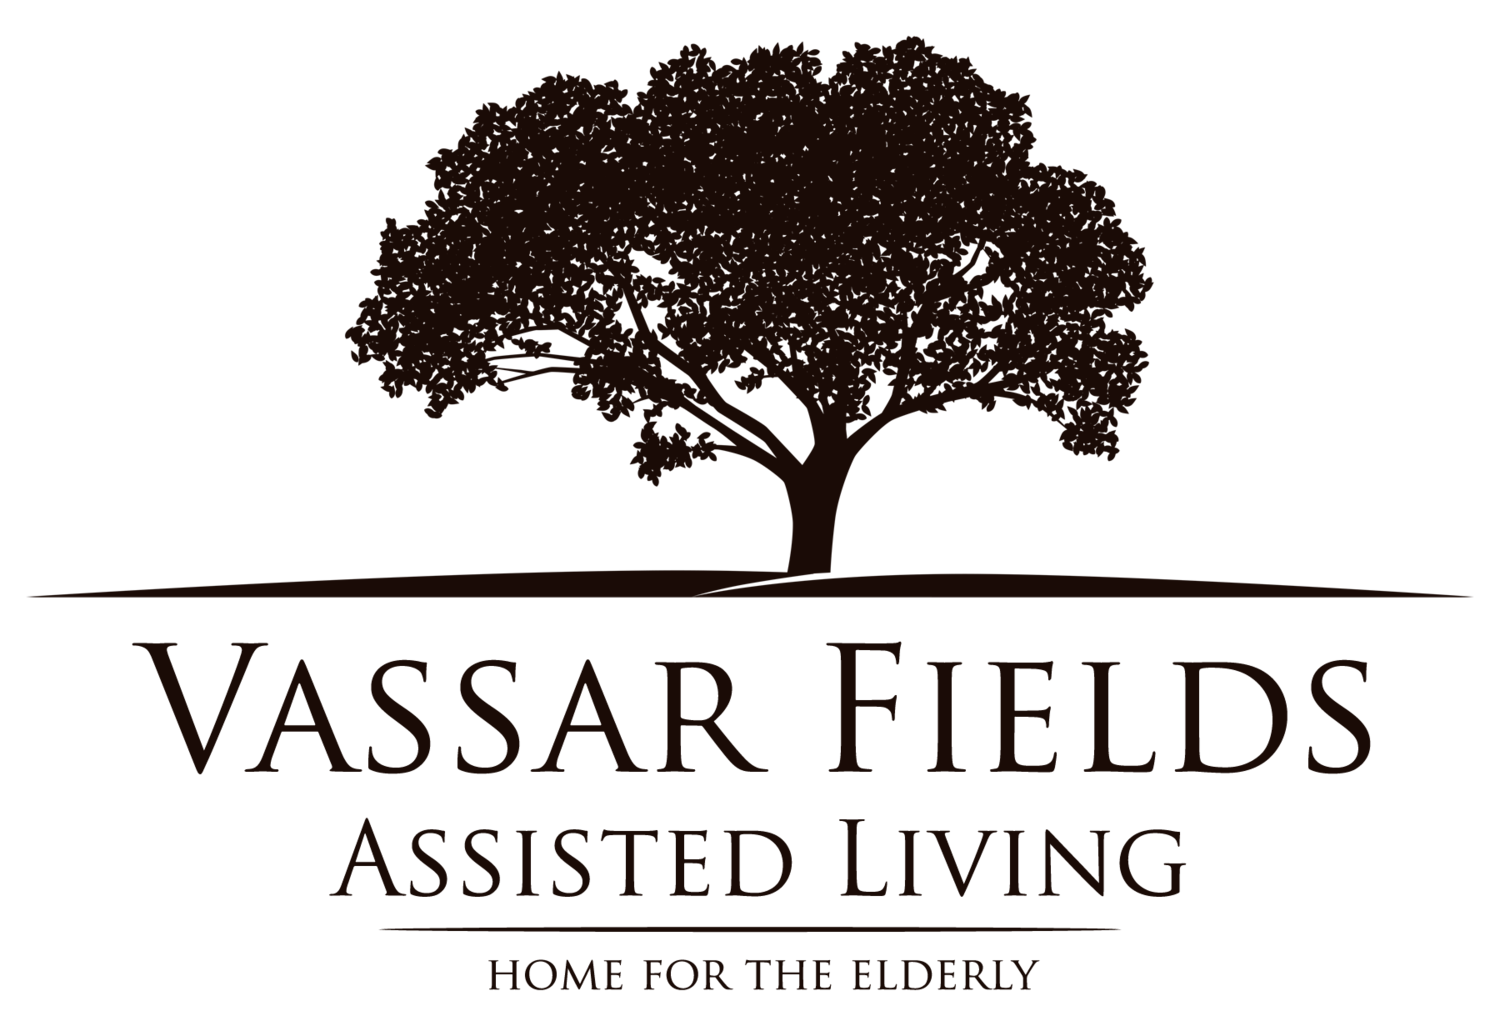 Vassar Fields Assisted Living